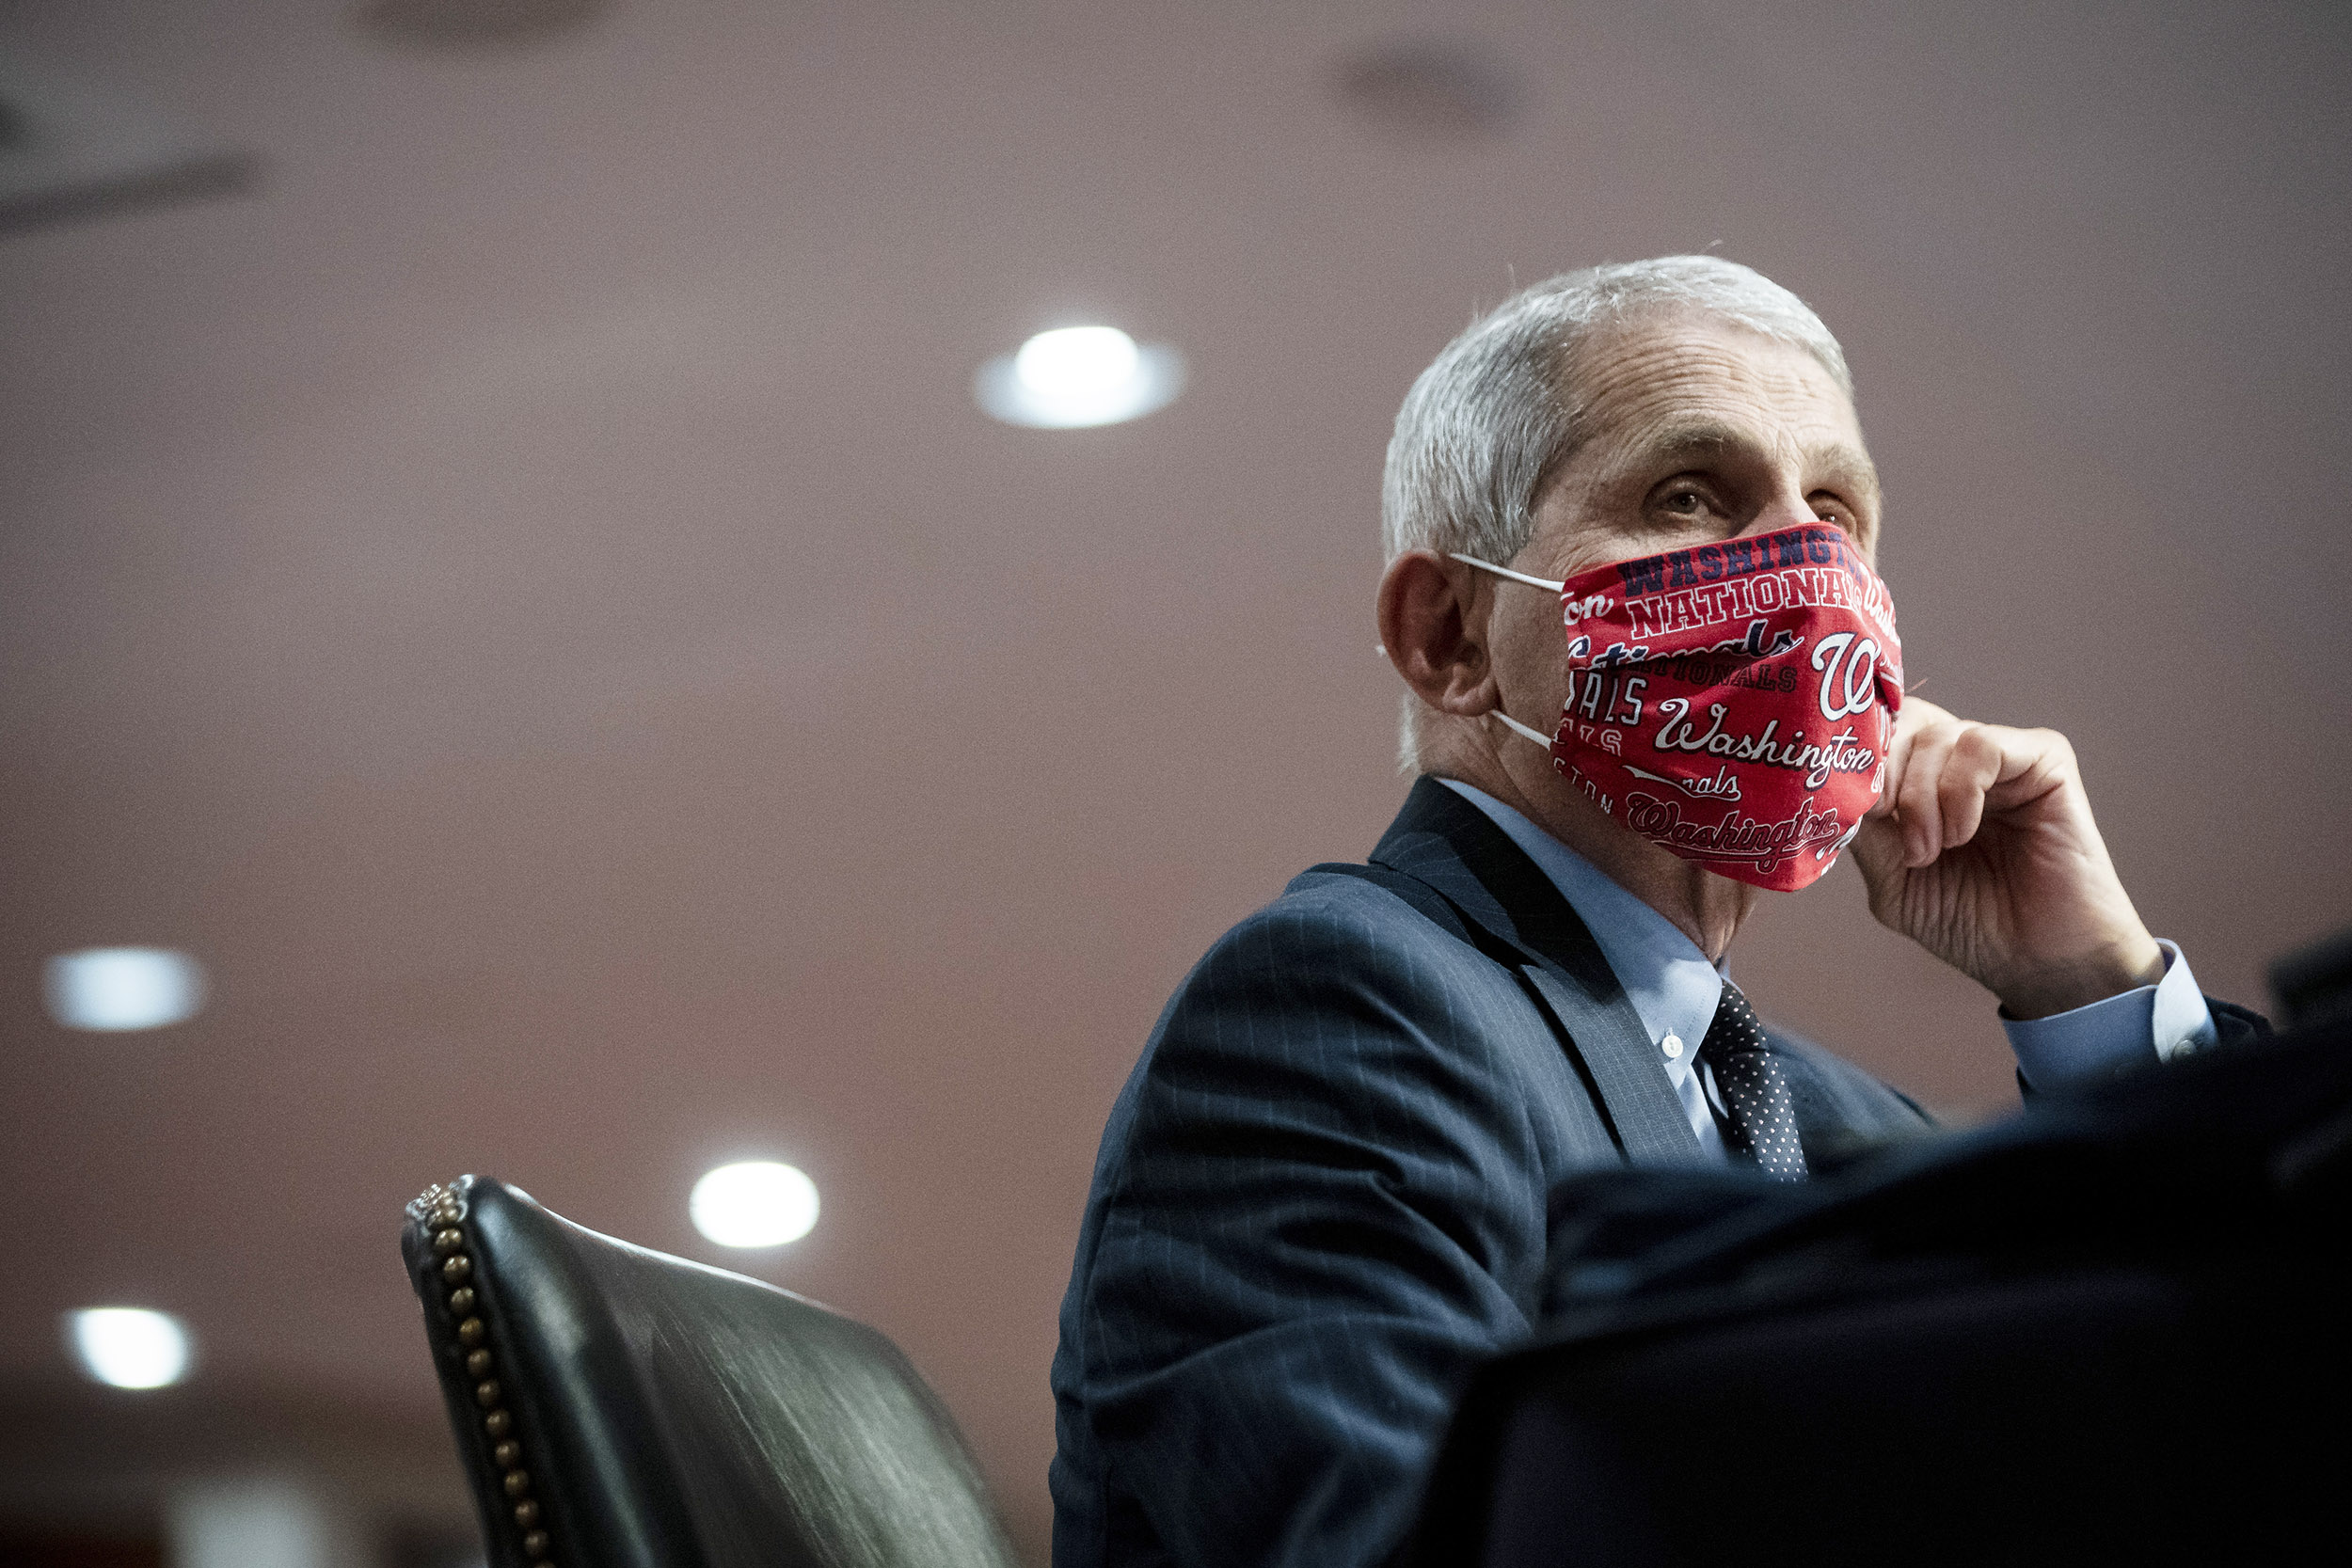 Anthony Fauci, director of the National Institute of Allergy and Infectious Diseases, wears a protective mask on June 30.